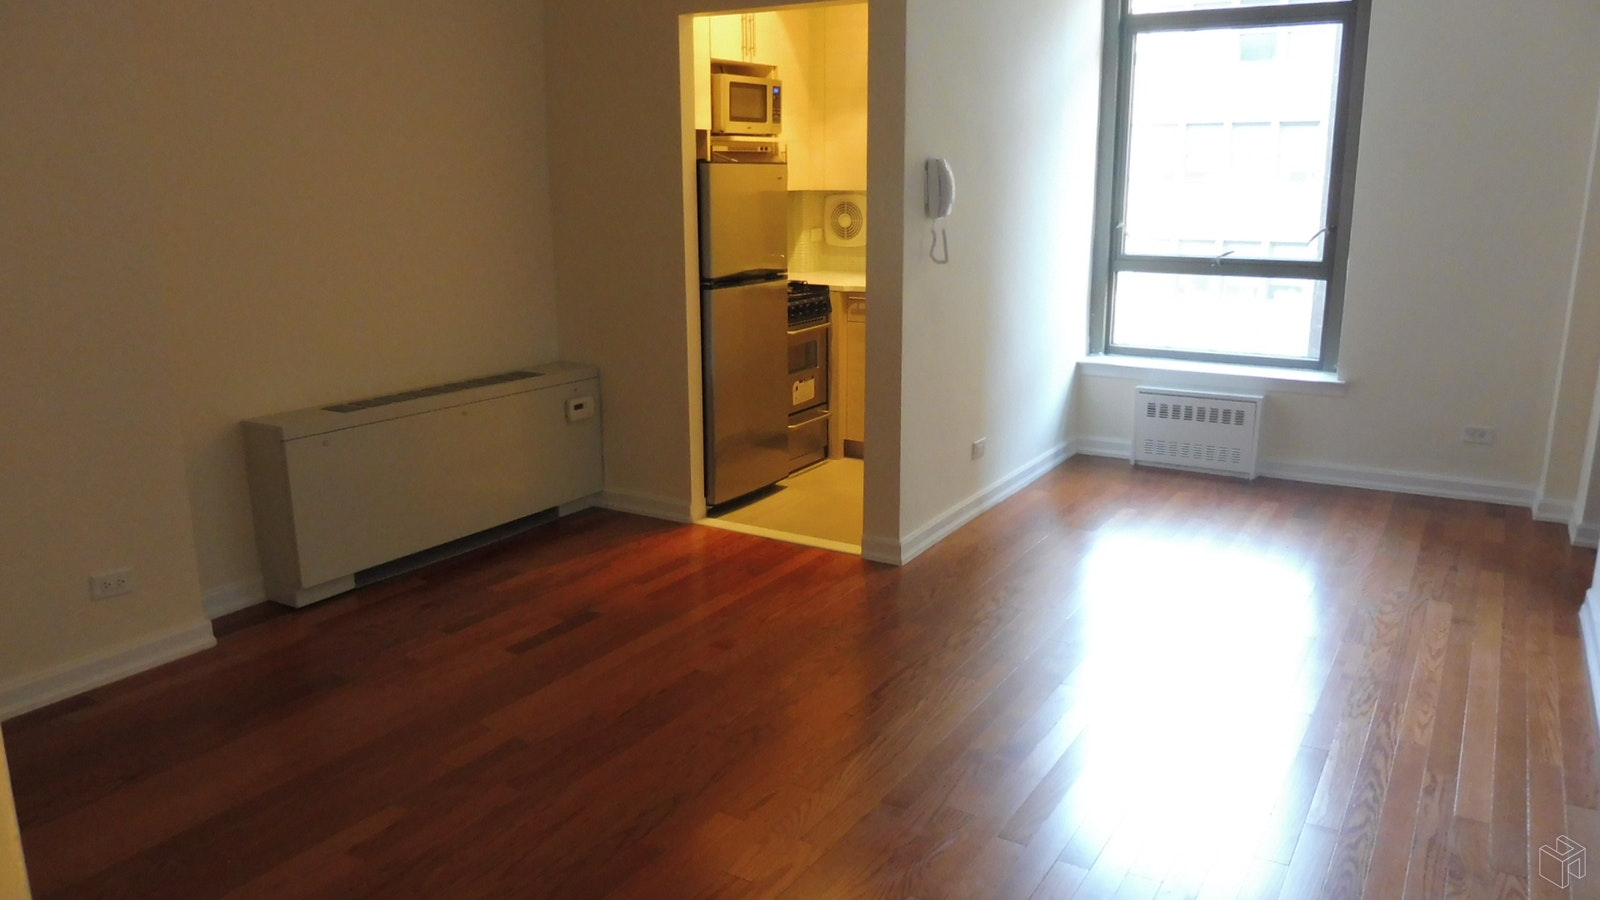 4 Park Avenue, Midtown East, NYC, 10016, Price Not Disclosed, Rented Property, Halstead Real Estate, Photo 1